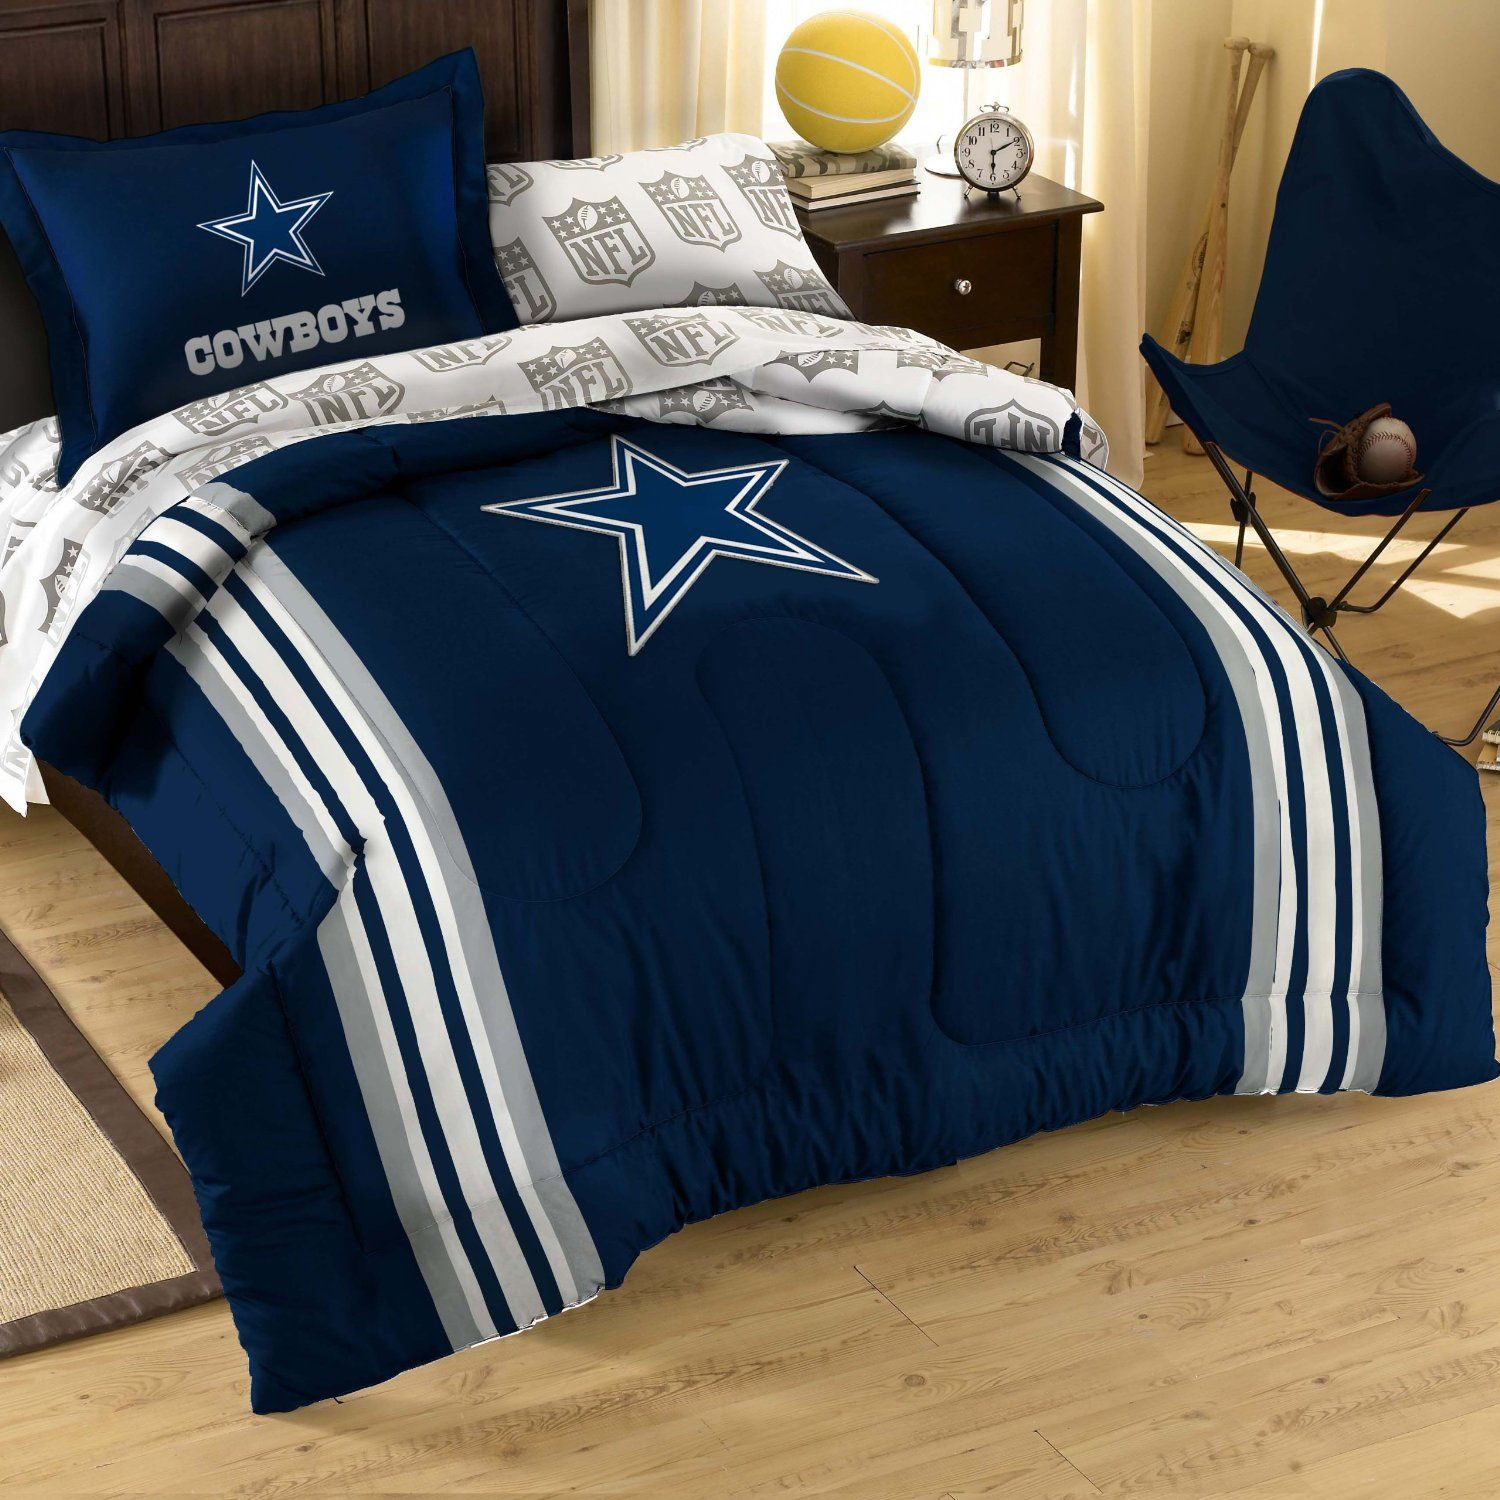 I So Want This For My House But My Husband Will Never Sleep In It